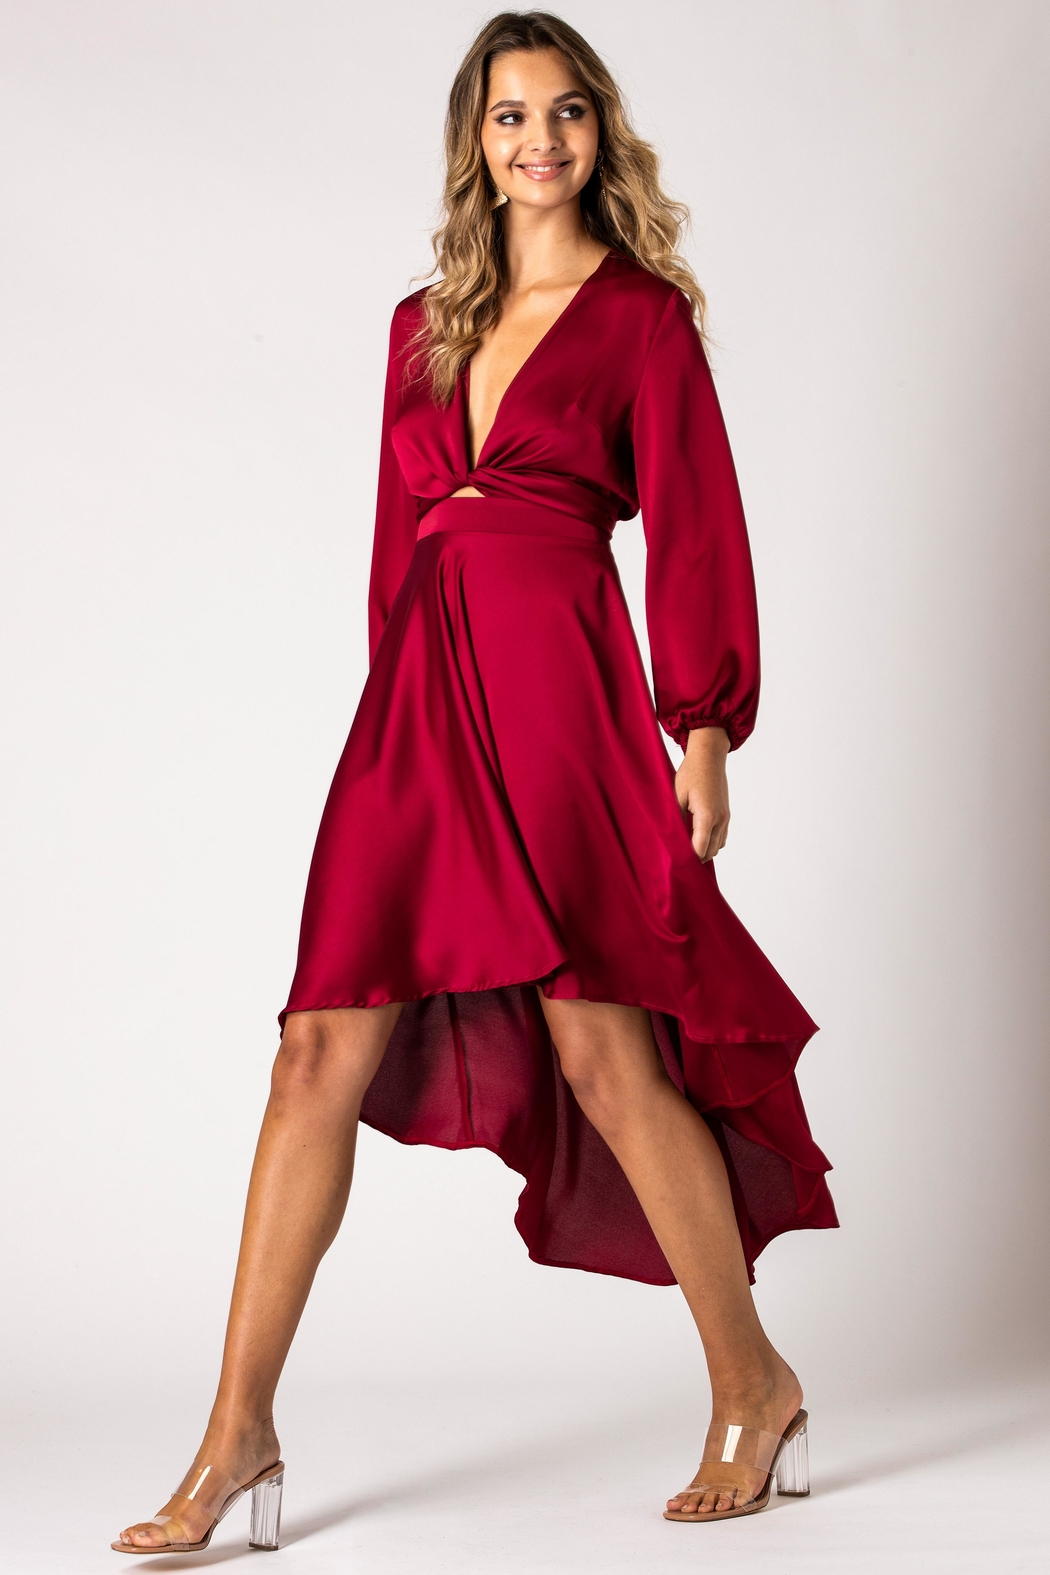 Urban Touch Burgundy Dip Hem Wrap Front Dress With Long Sleeves - Main Image